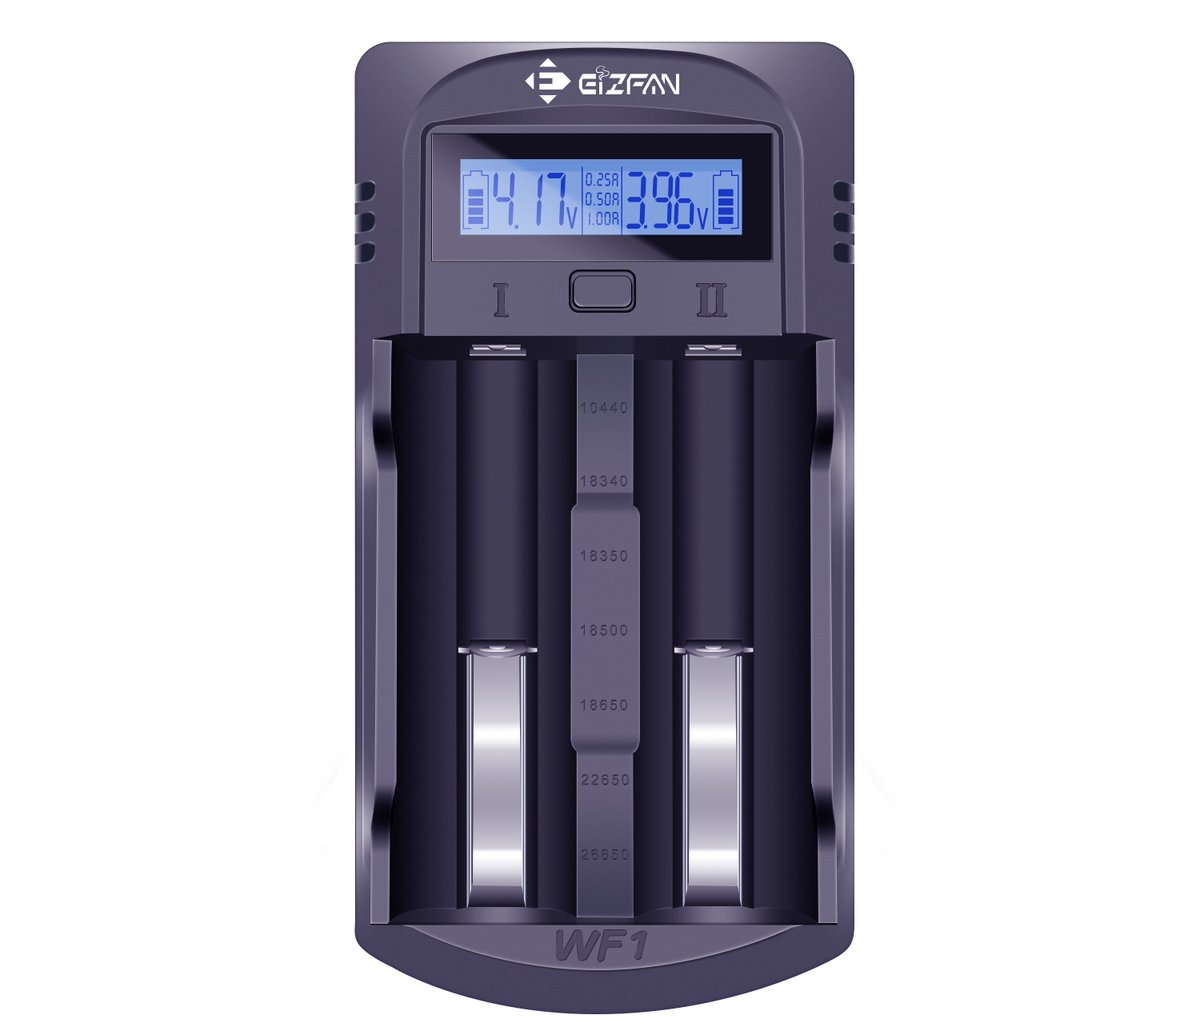 Battery Charger Vape Hashtag On Twitter 1 Slot Baterai Wf1 2 Bay Lcd With 025a 05a 1a Charging How Do You Think Of It Vaping Vapefam Mod Ecigpic Rui9wkqawb